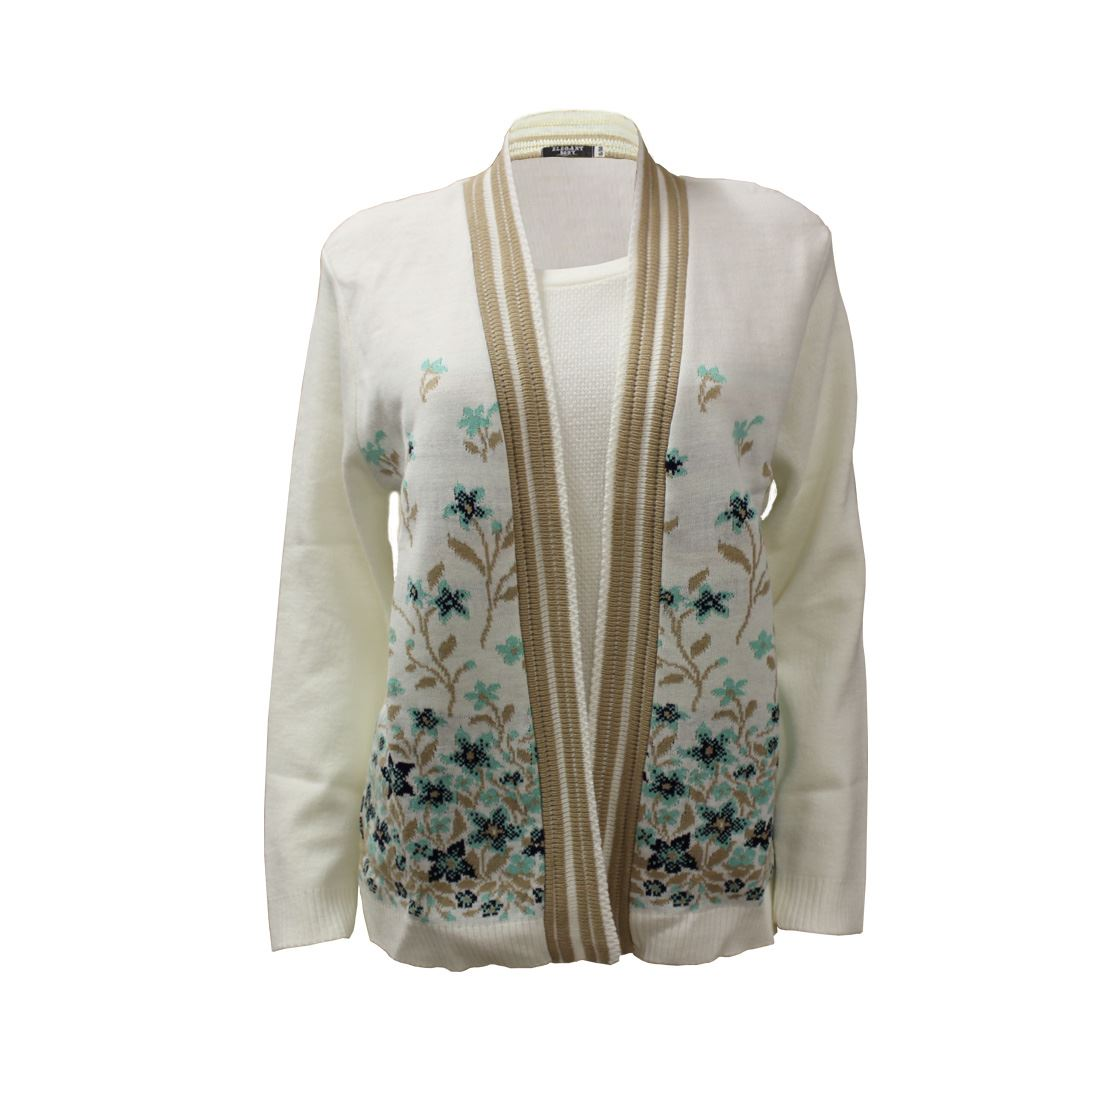 Womens-Ladies-New-Floral-Knitted-Twin-Set-inserted-Cardigan-Sweater-Jumper-Top